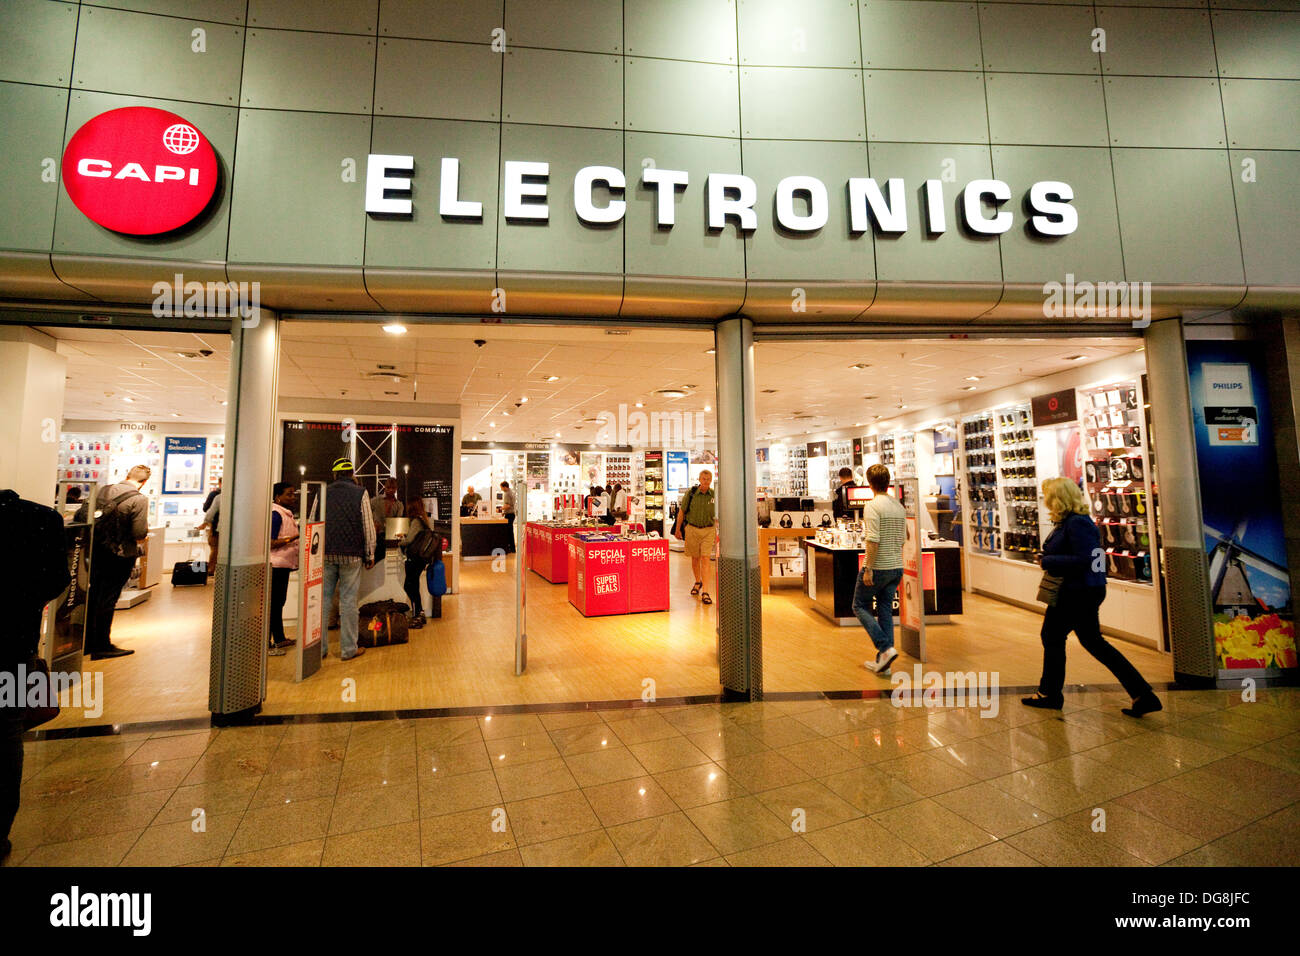 Capi Electronics store, Departure lounge, Johannesburg airport terminal, South Africa - Stock Image